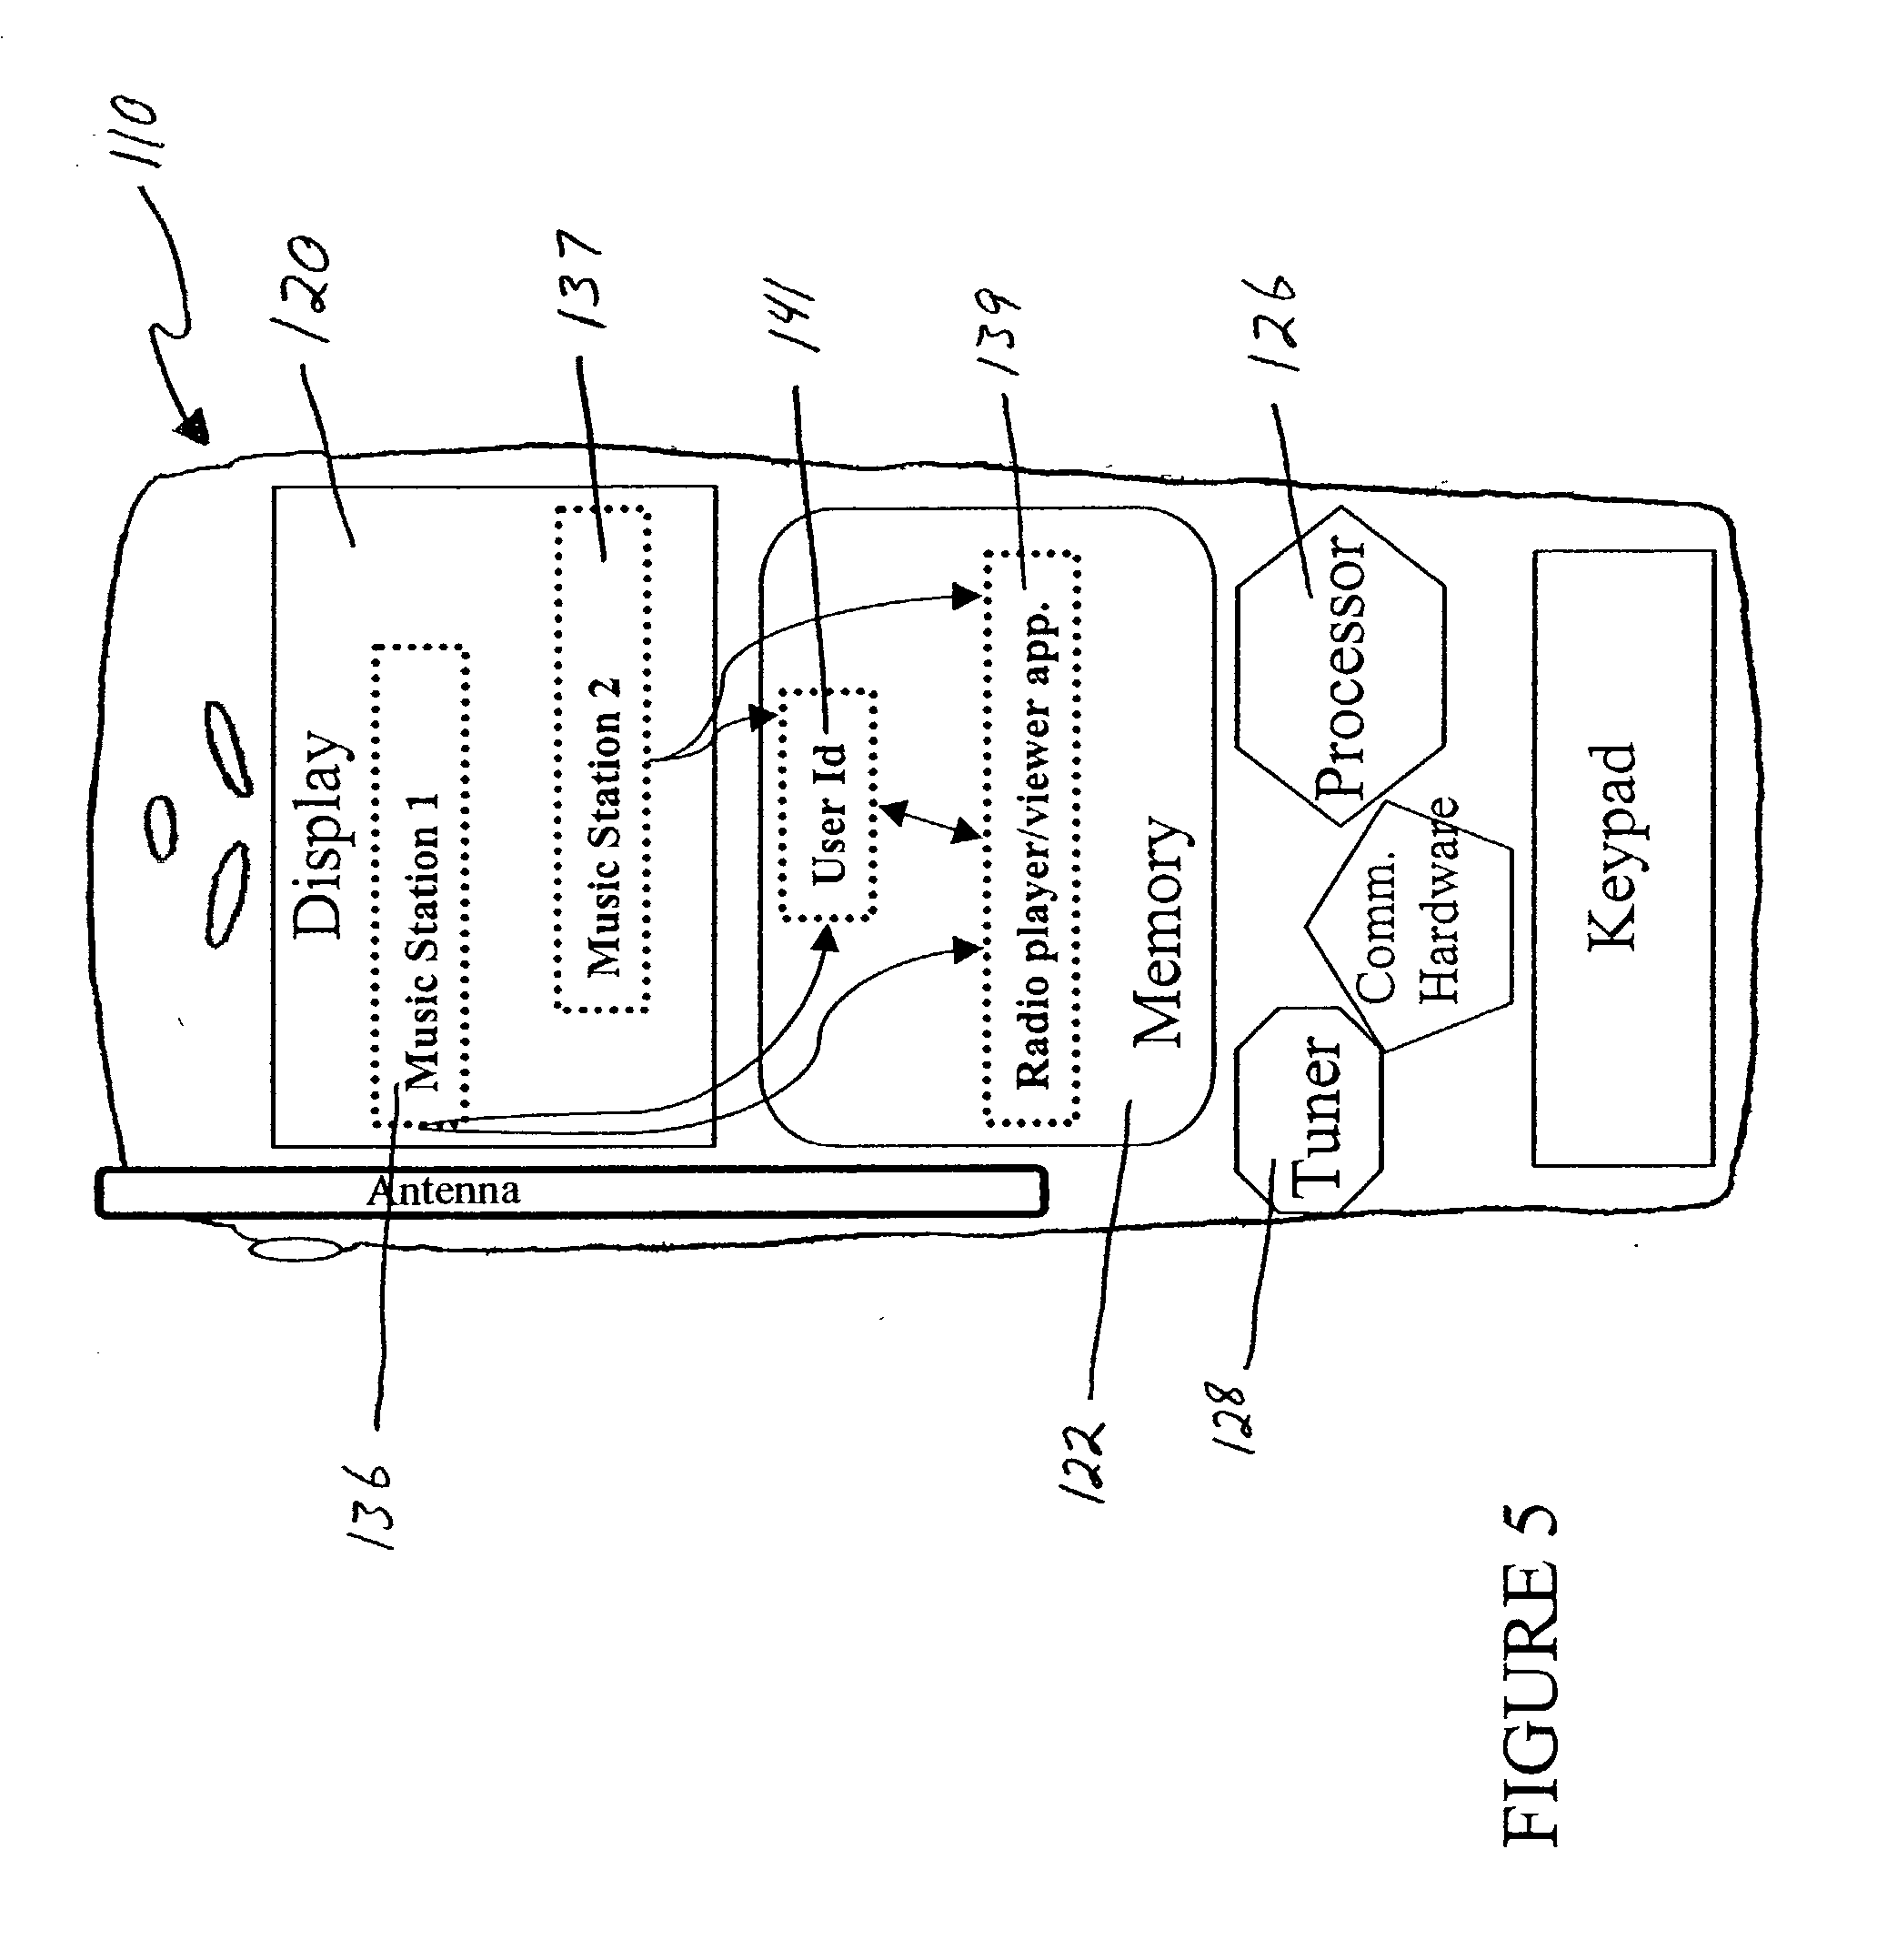 Patent Us20040198279 Broadcast Media Bookmarks Google Patents Circuit Diagram Of Quiz Display With Seven Segment Indication Drawing